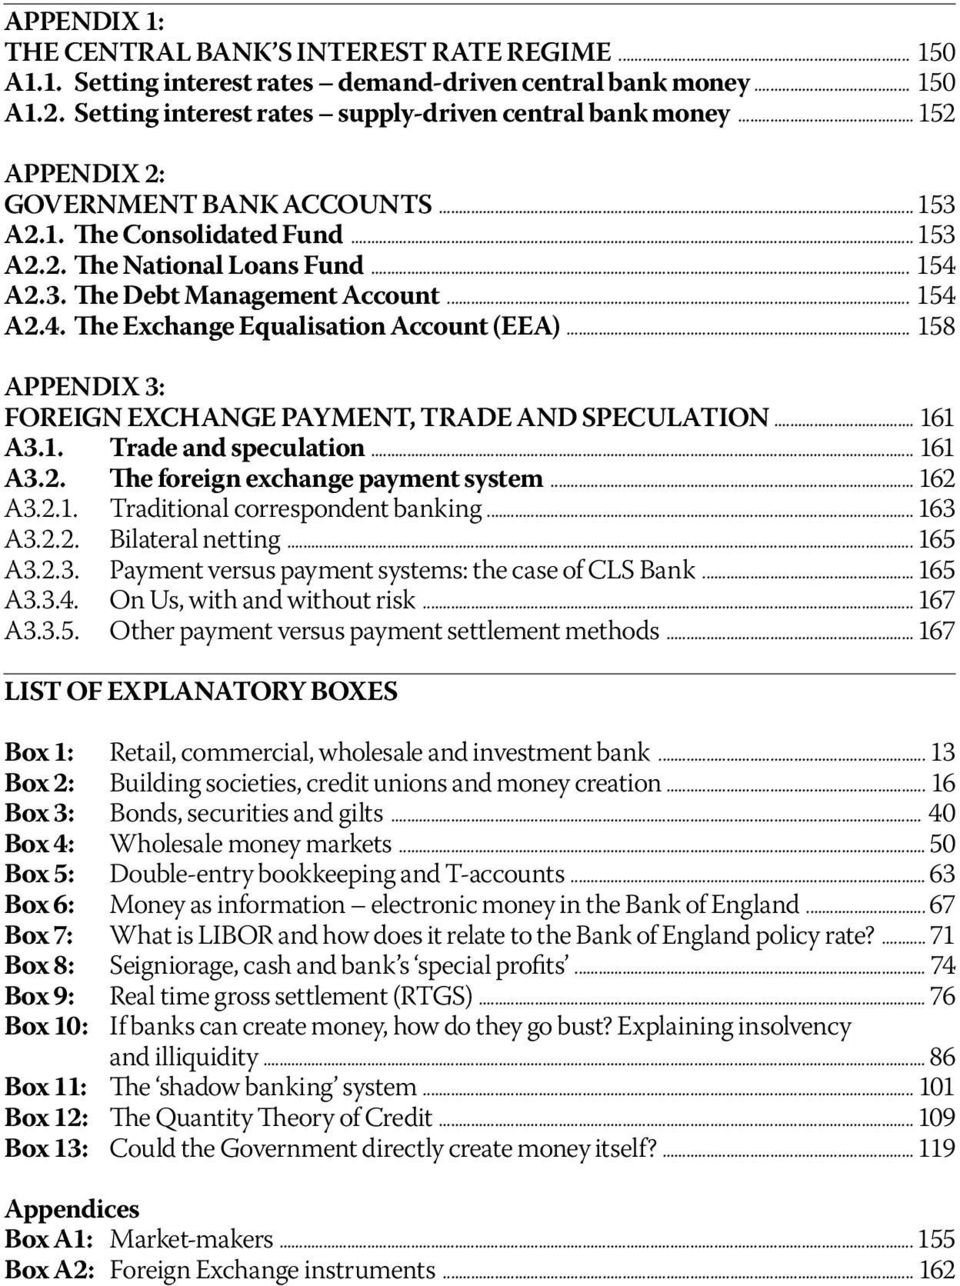 .. 158 APPENDIX 3: FOREIGN EXCHANGE PAYMENT, TRADE AND SPECULATION... 161 A3.1. Trade and speculation... 161 A3.2. The foreign exchange payment system... 162 A3.2.1. Traditional correspondent banking.